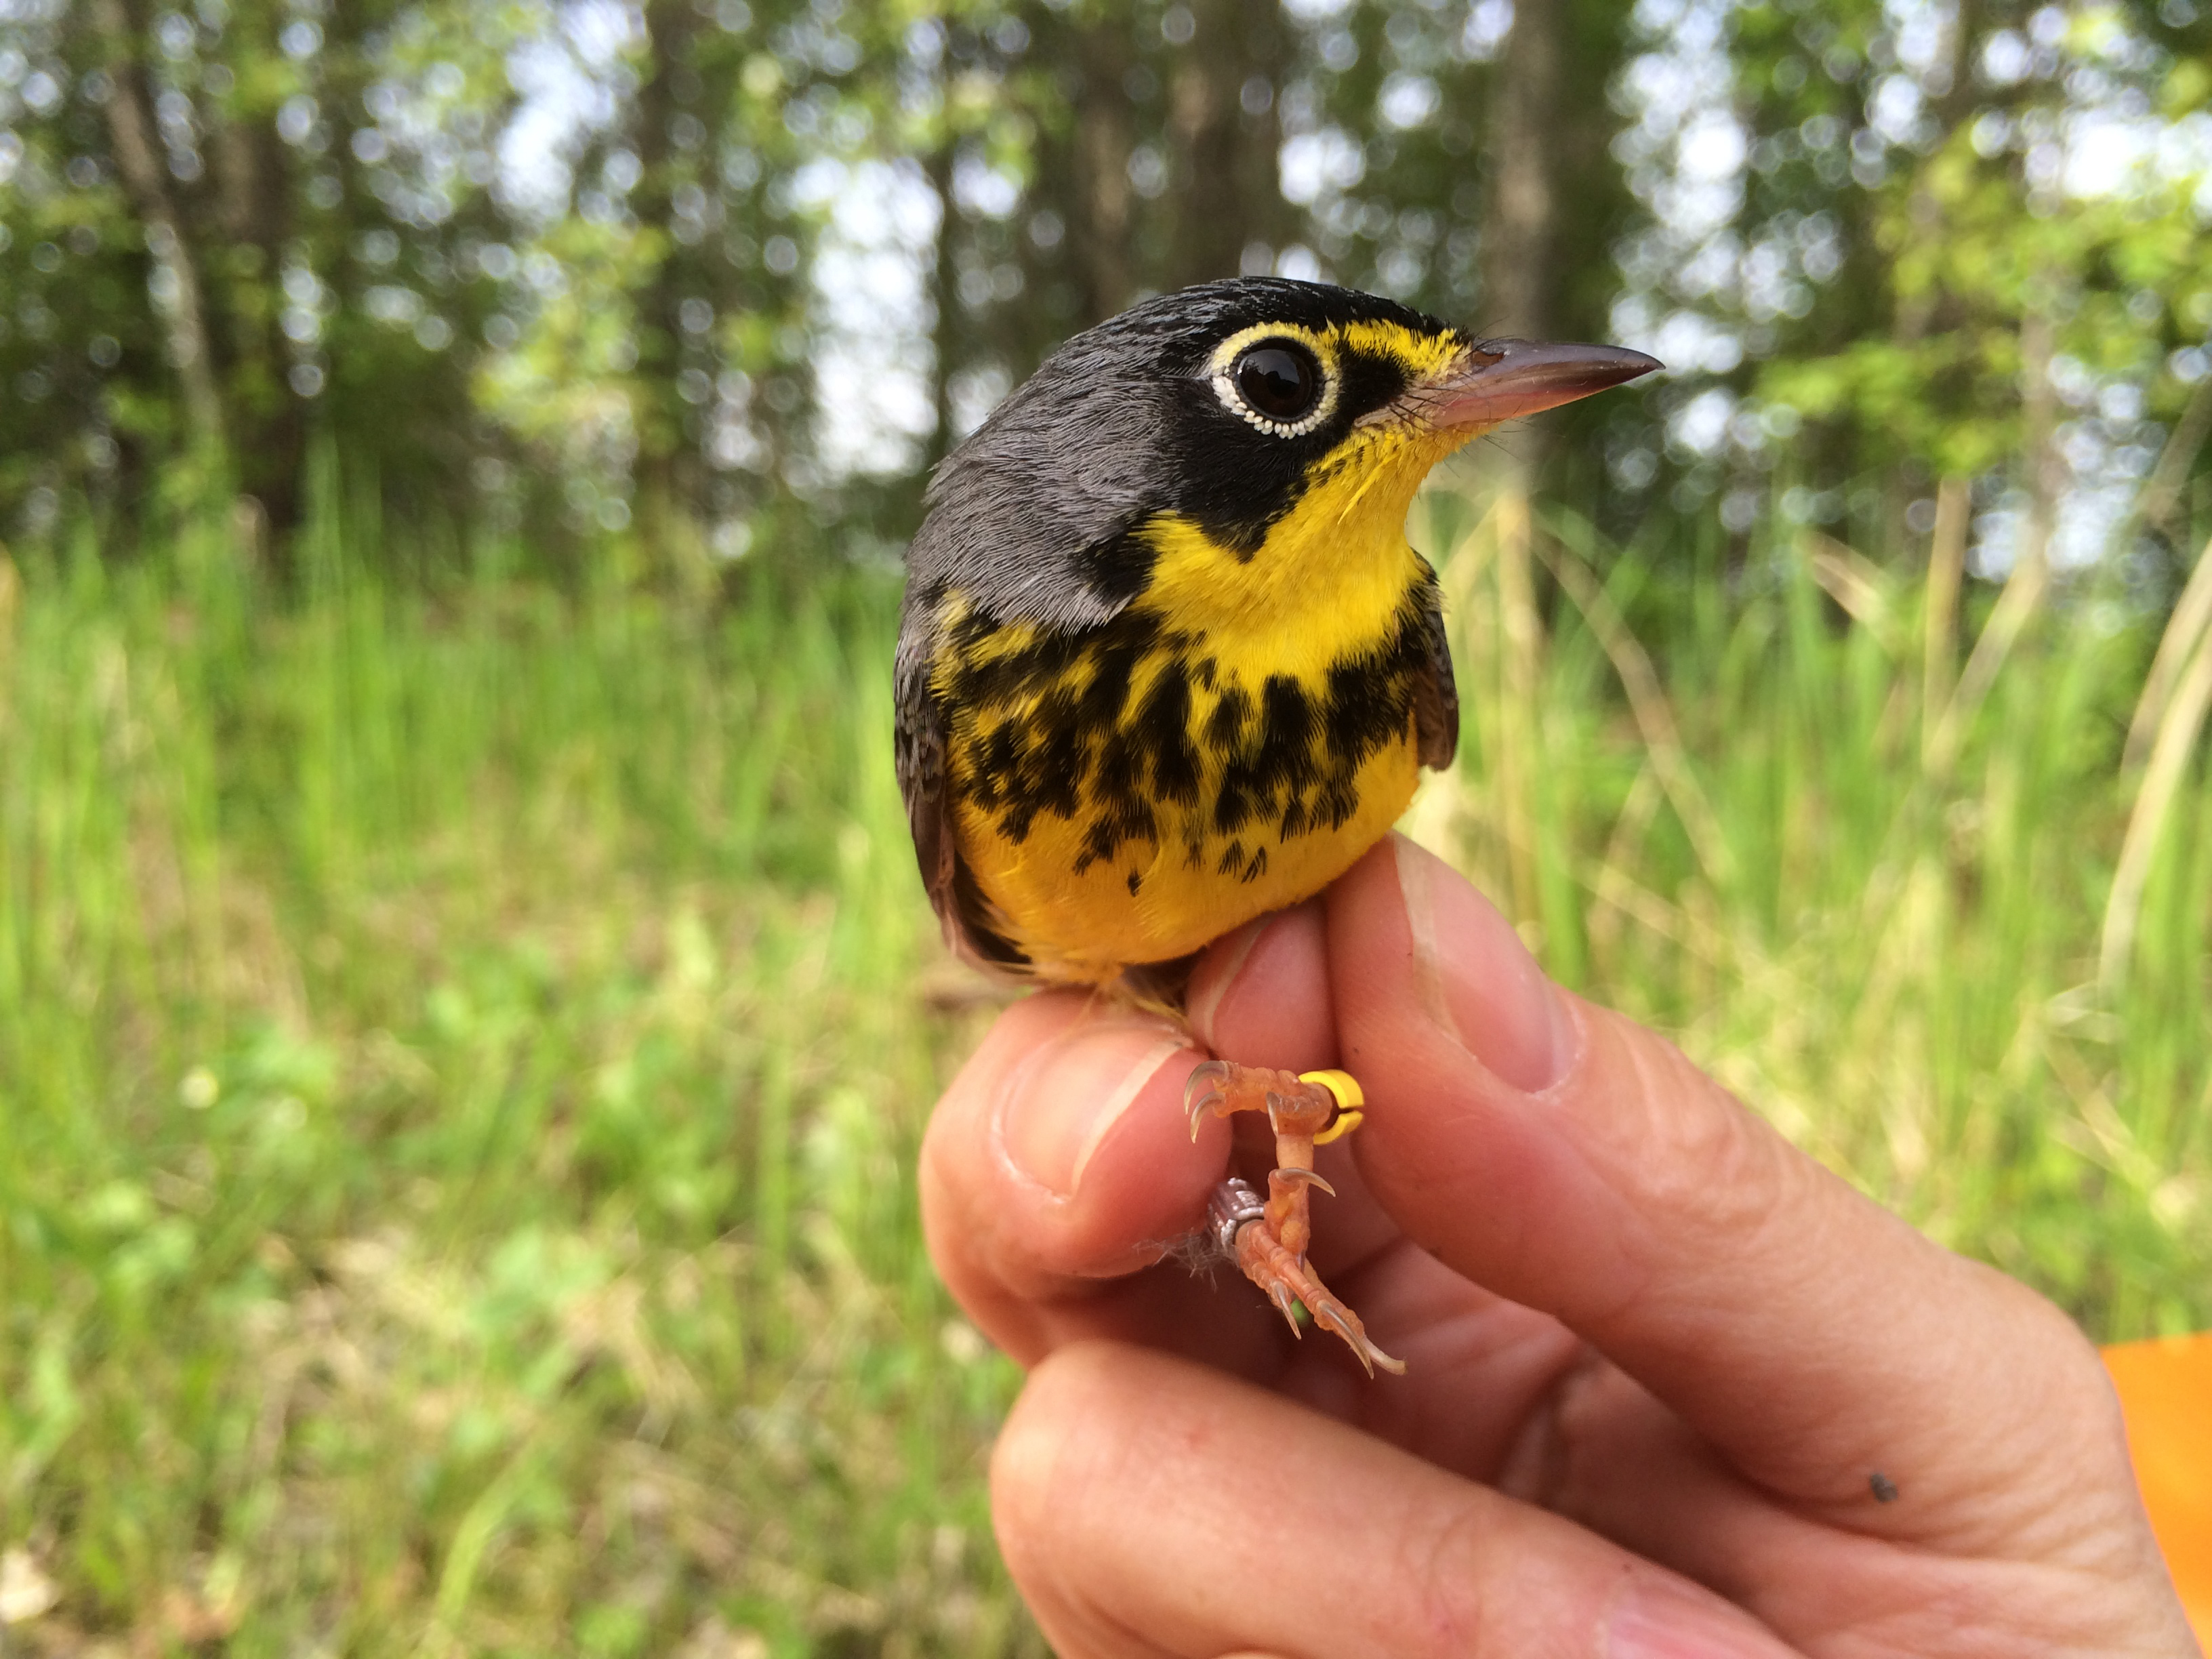 A researcher in Manitoba, Canada holds a Canada Warbler that has been fitted with a geolocator and leg bands. (Kevin Fraser/Courtesy Boreal Songbird Initiative)